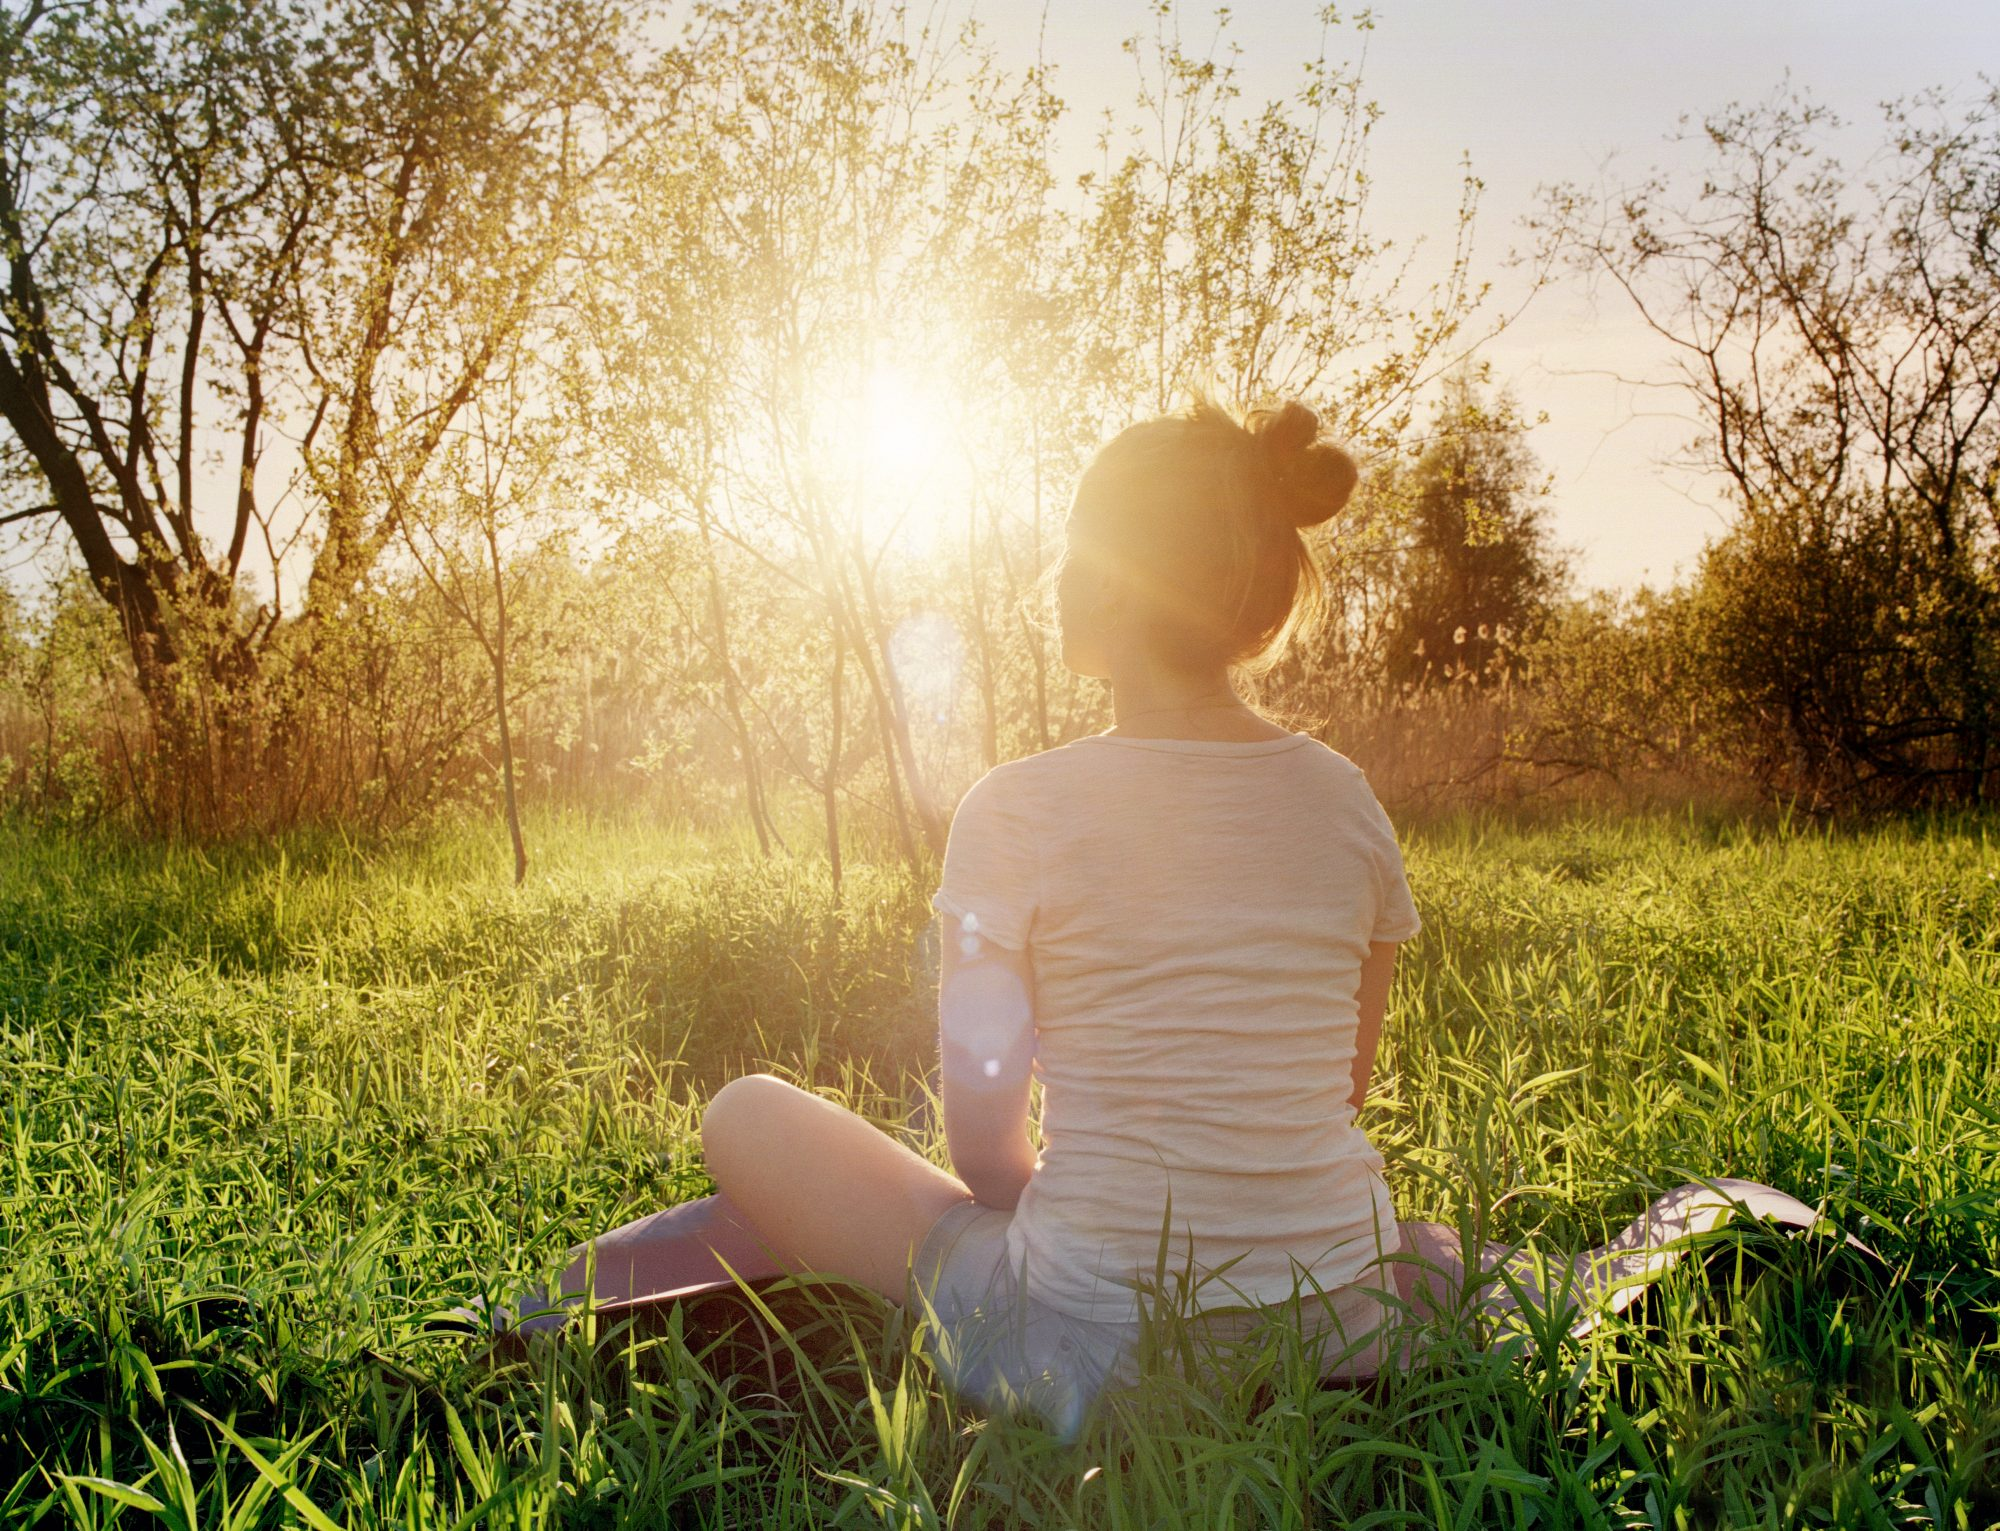 meditation-outdoors-sun-field